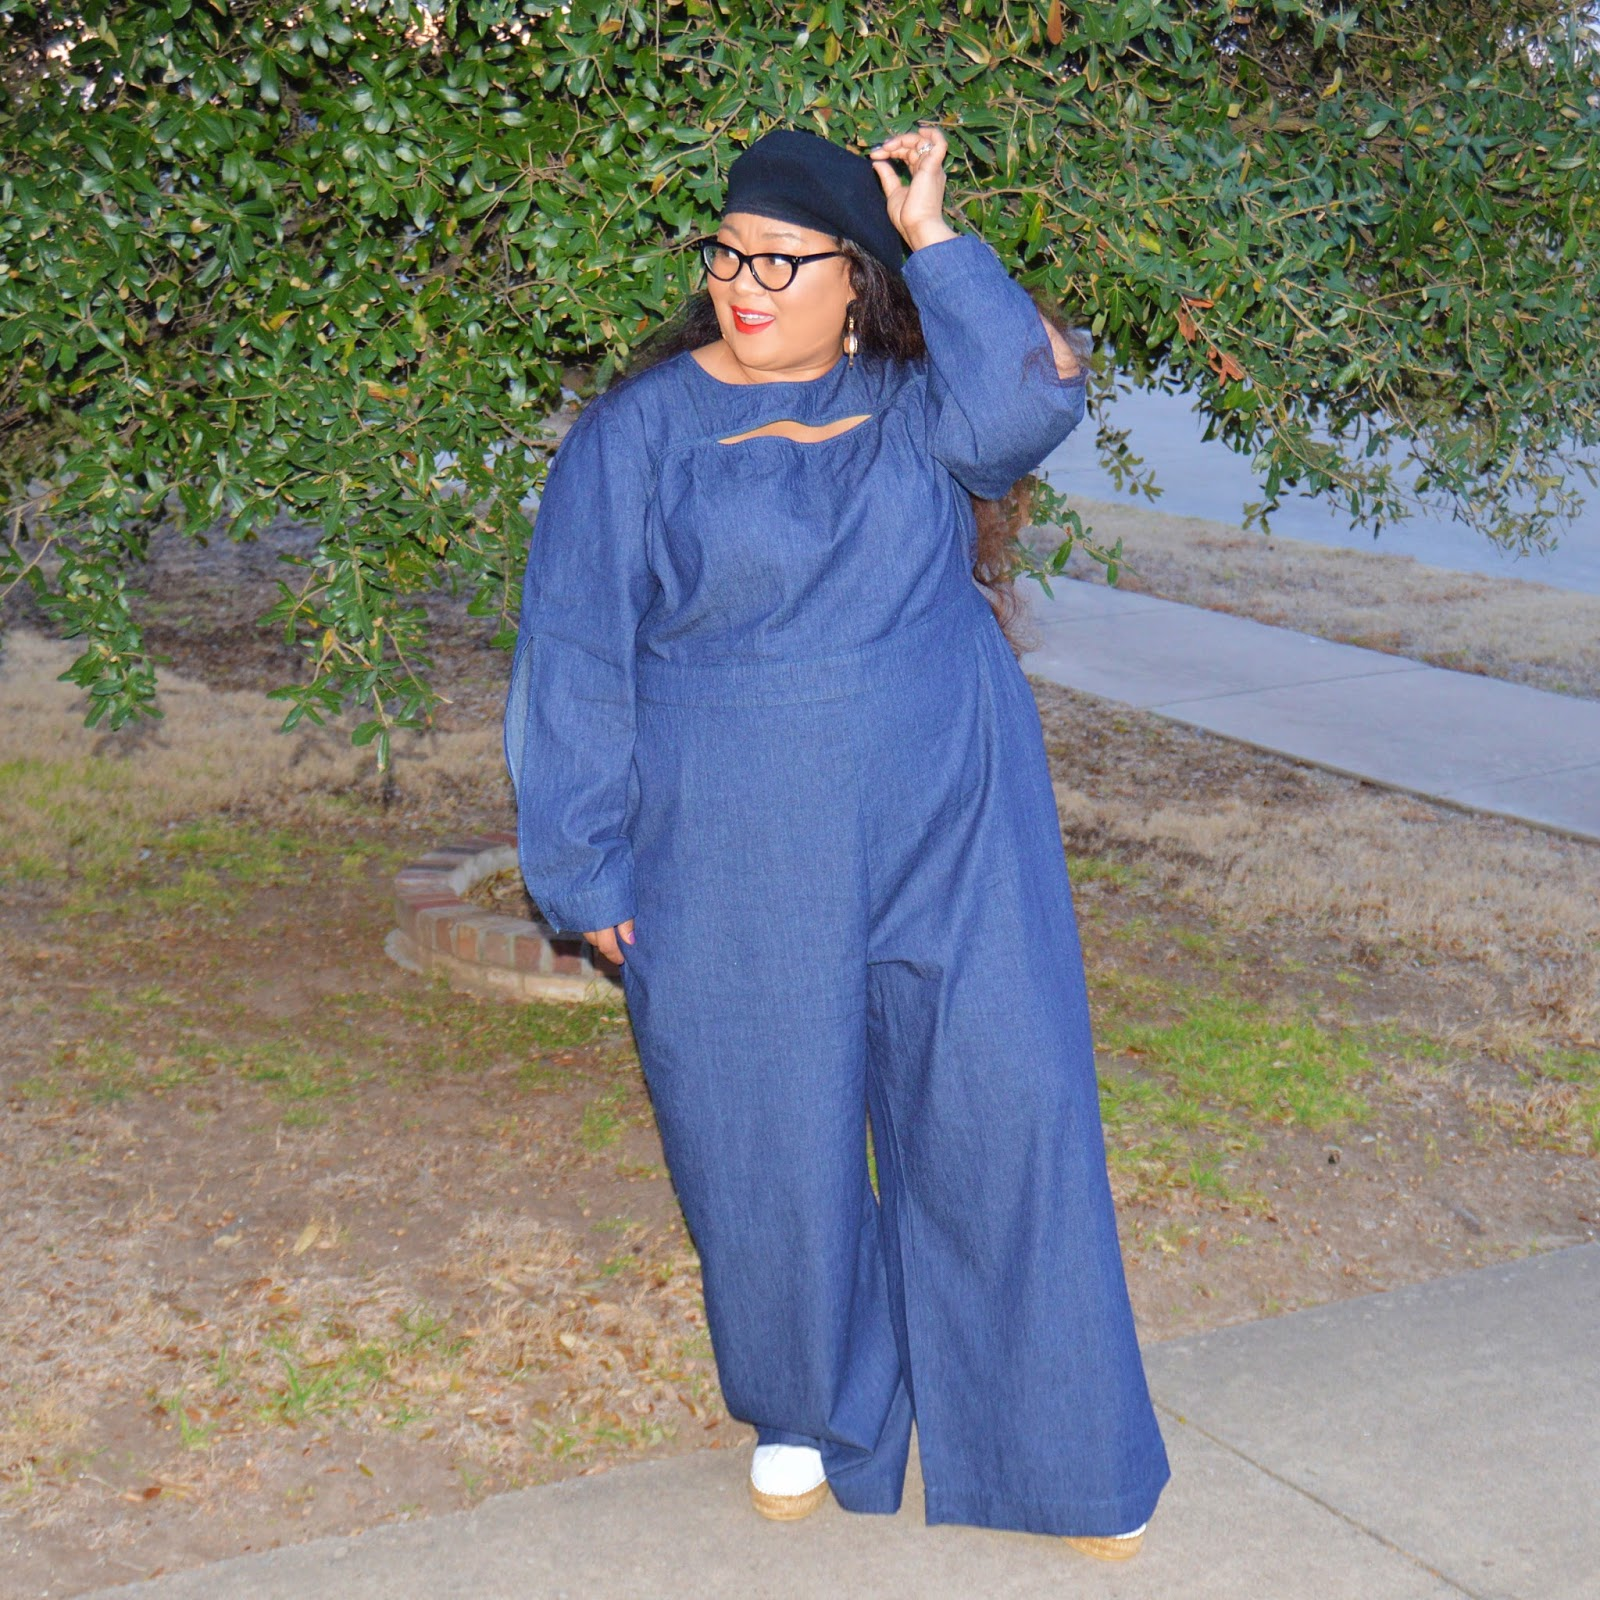 83a3c9ff5bae6 I absolutely love this chambray one c o Lane Bryant. It runs large so size  down. I didn t size down but ended up loving the oversized look.